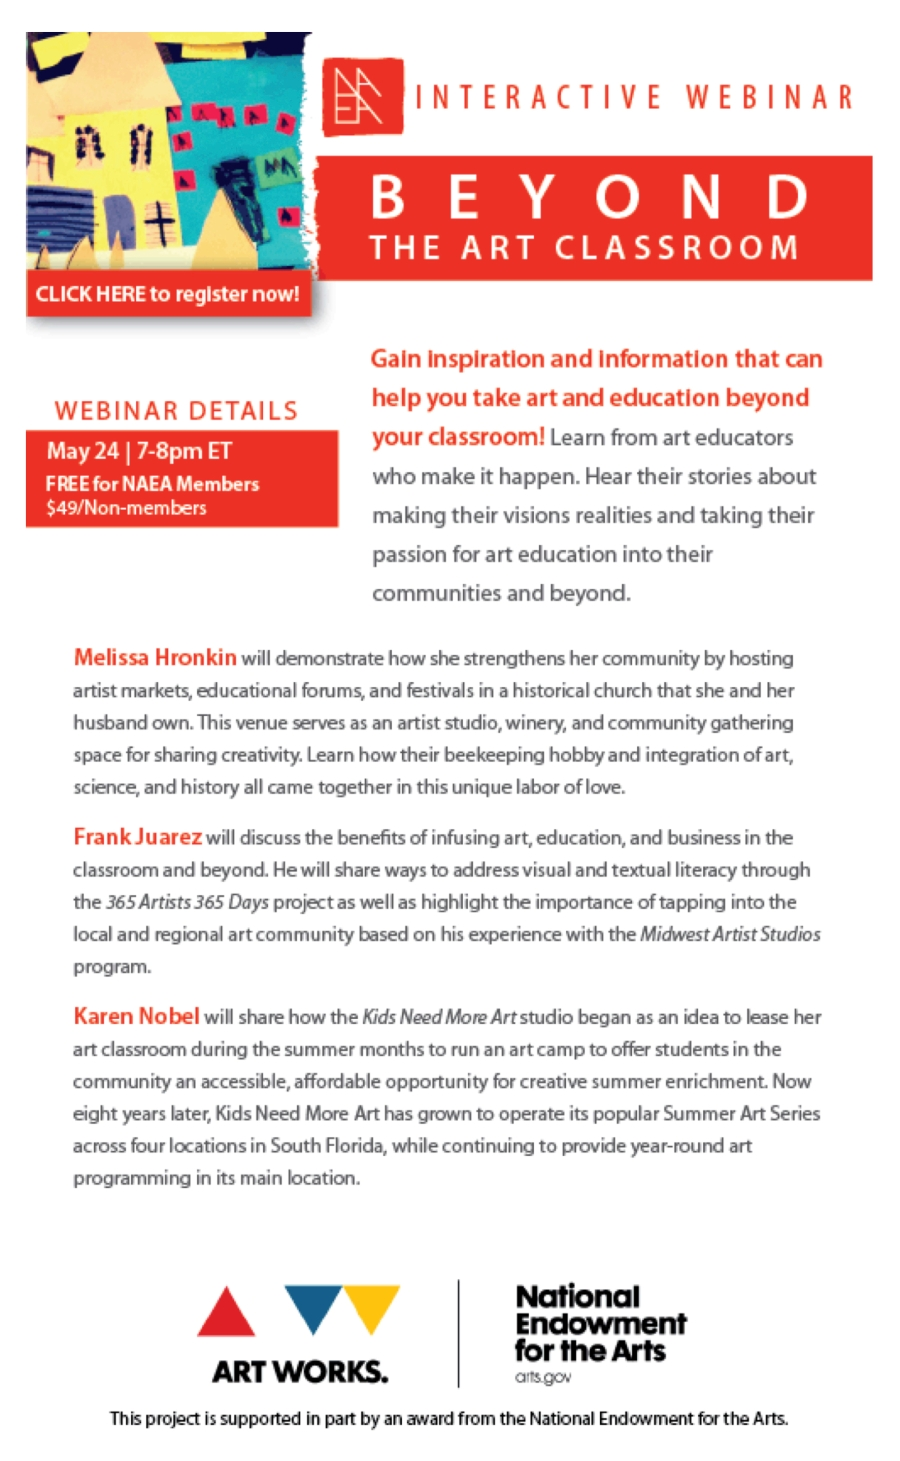 [INTERACTIVE WEBINAR] Beyond the Art Classroom - May 24 | 7-8 pm ET